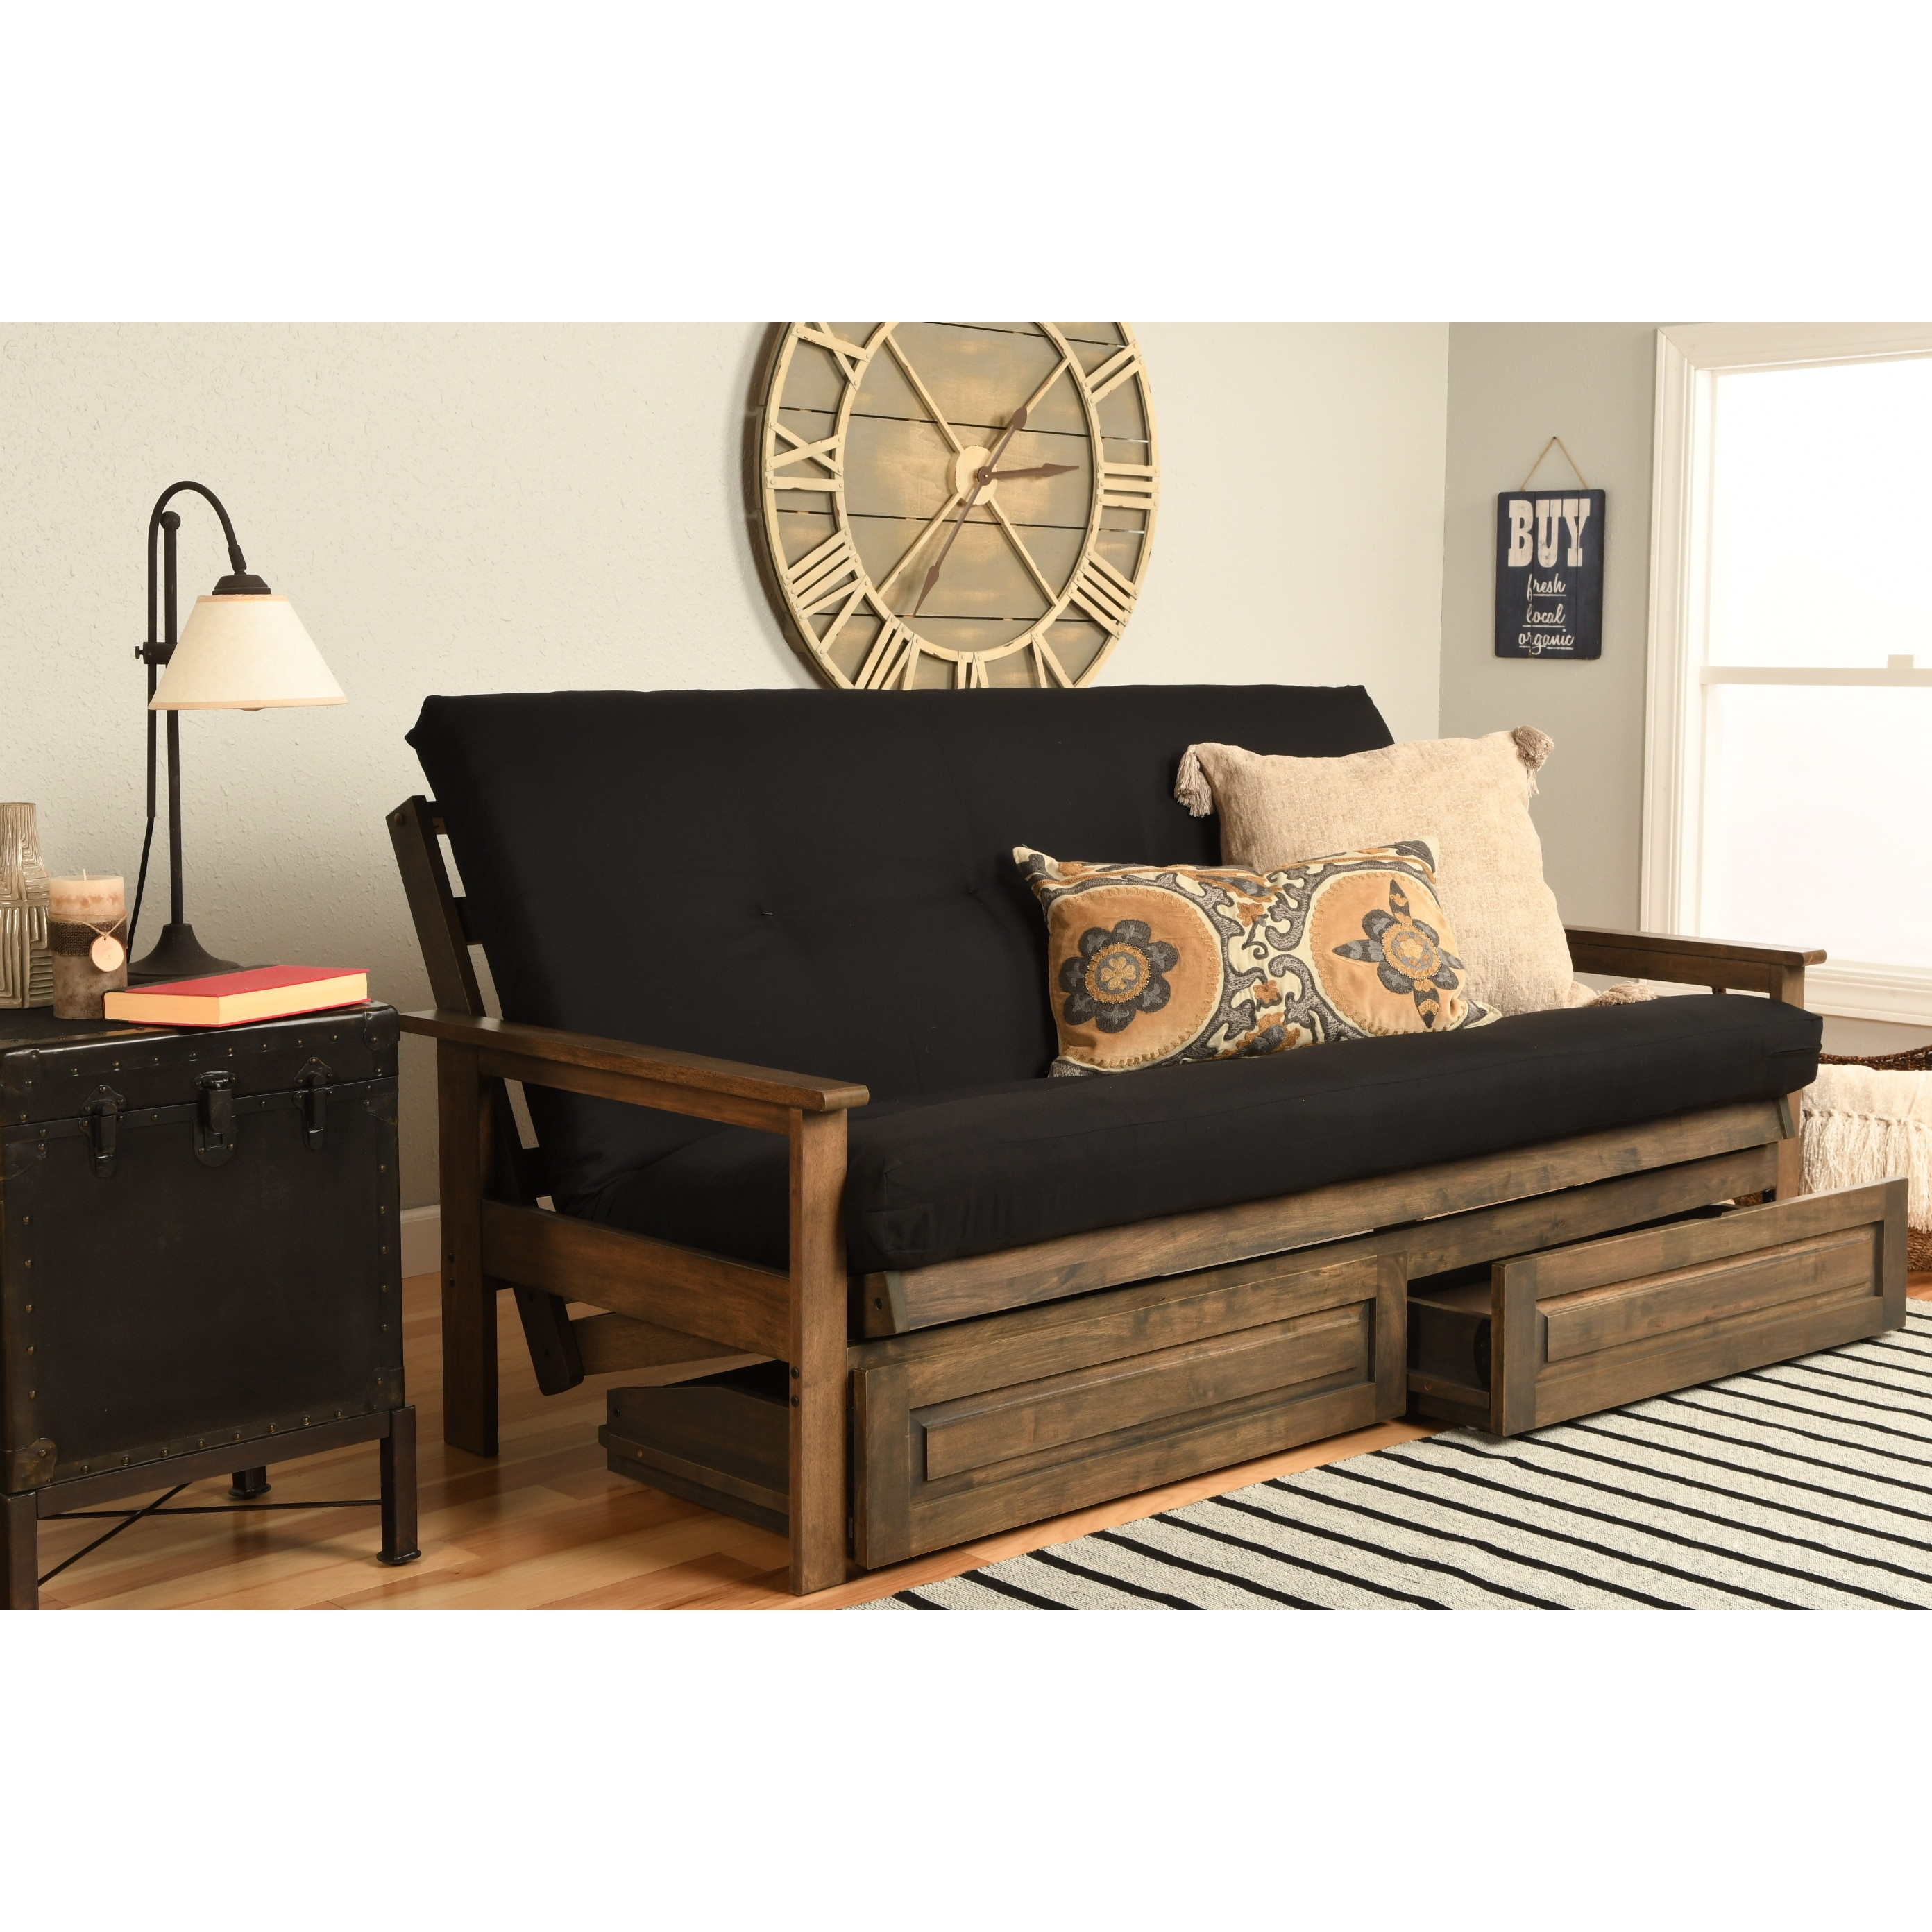 Ashley Furniture Sofa Sleepers Images Beds Design